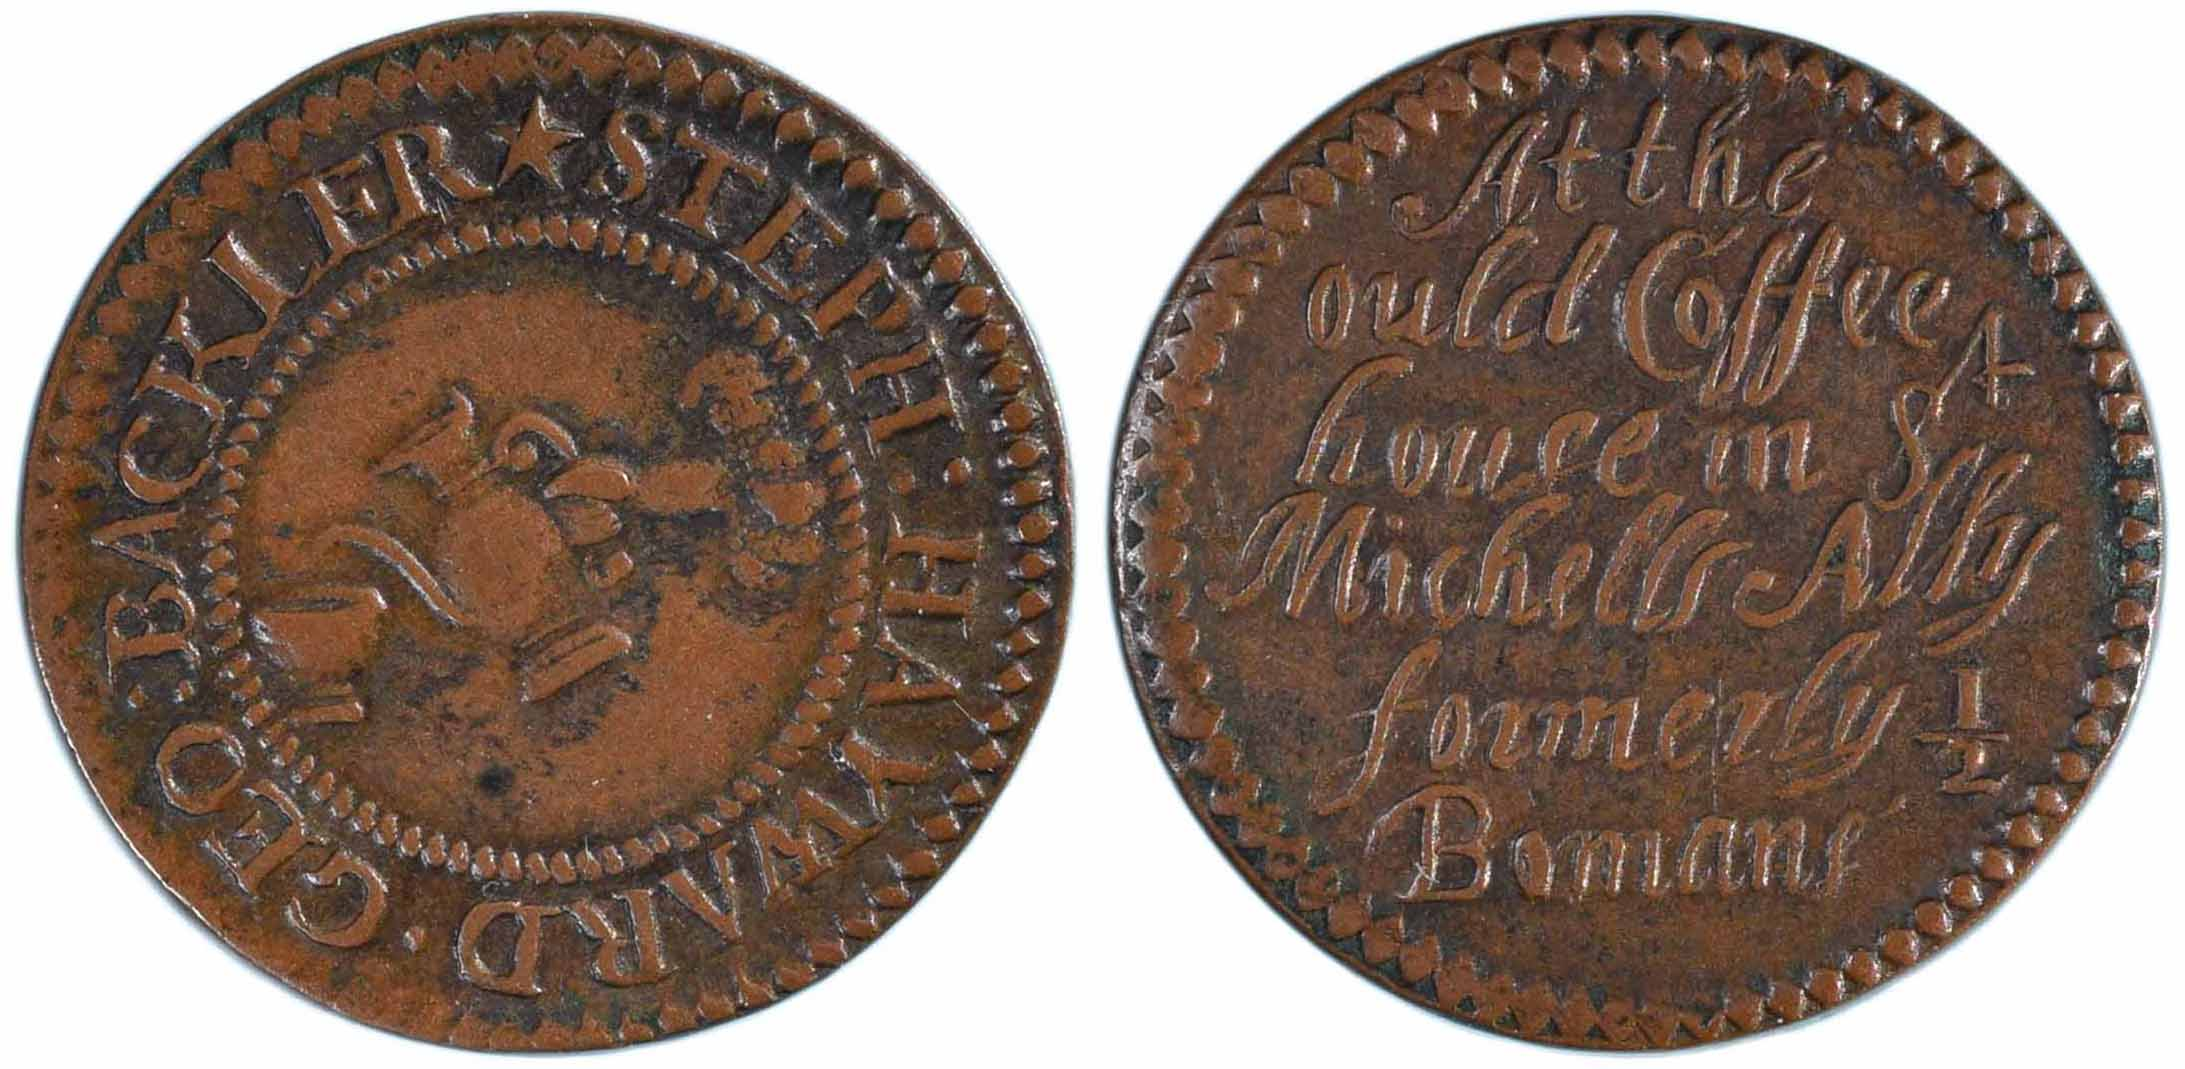 17th century tokens